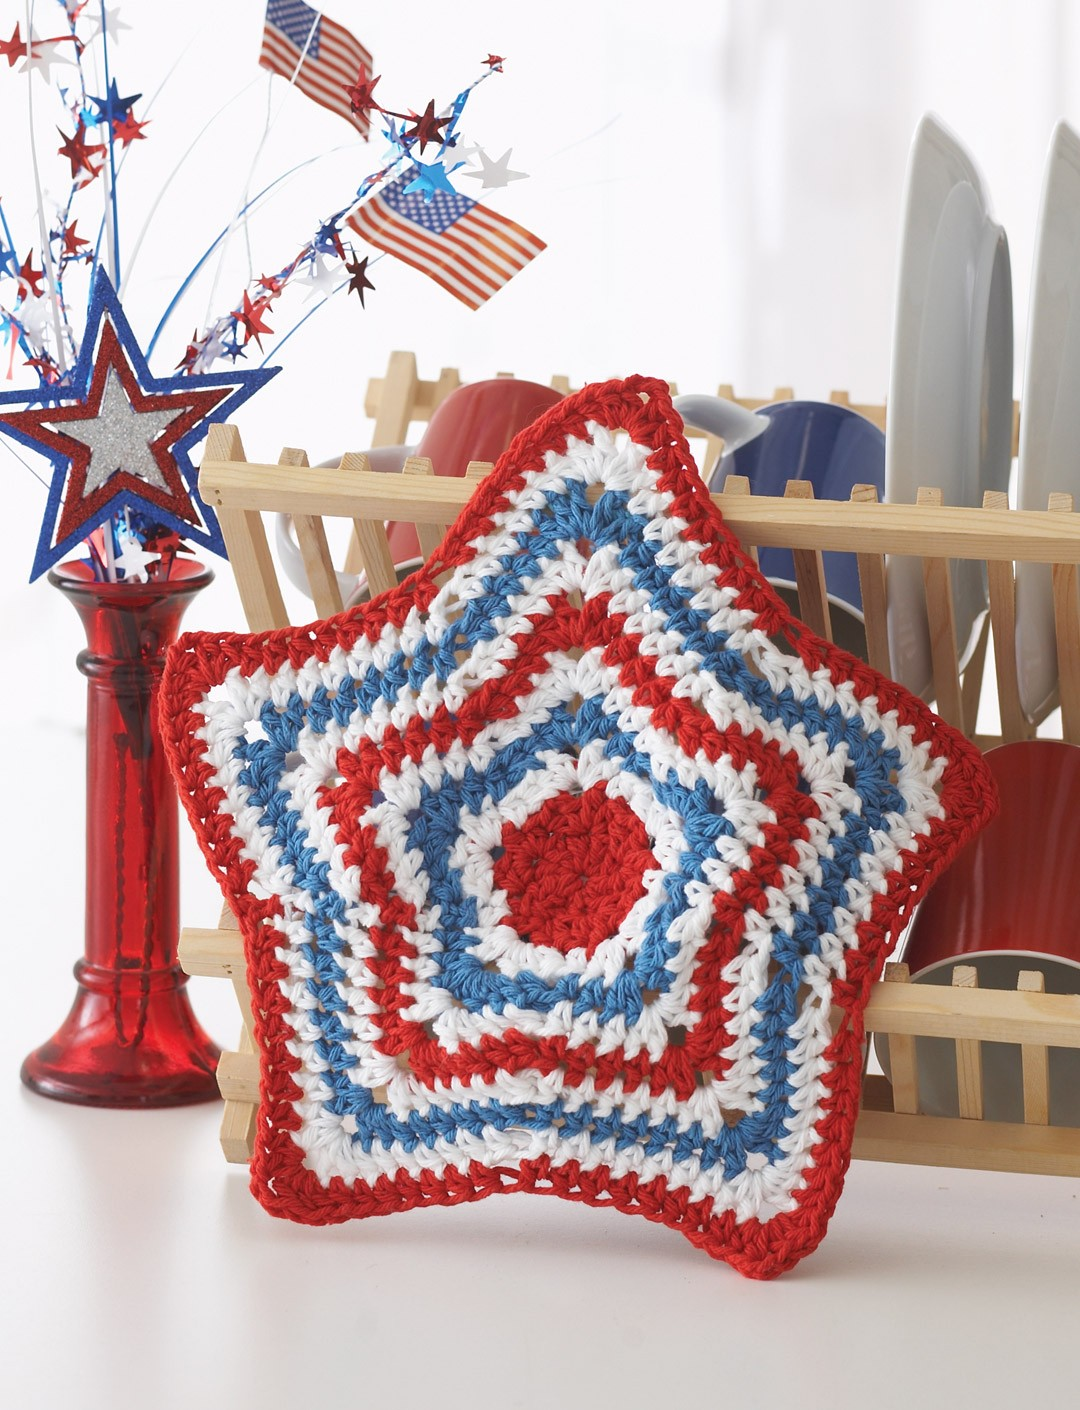 Stripey Star Dishcloth